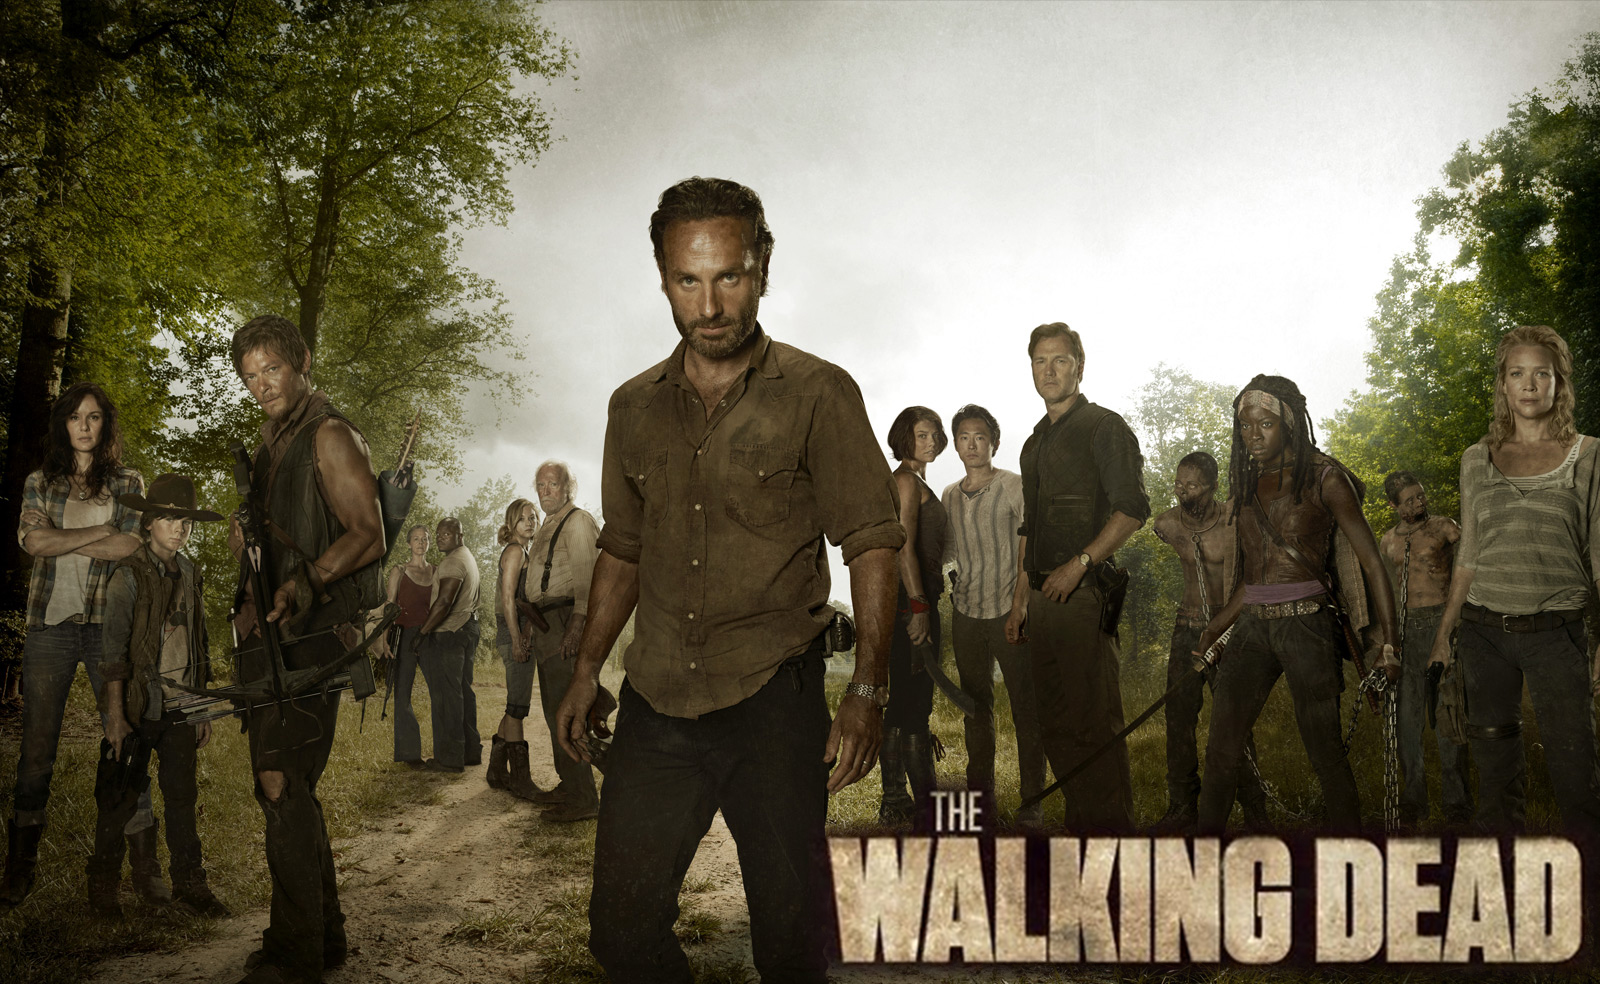 http://1.bp.blogspot.com/-_DPsqj0AL9k/USS2wzoOLKI/AAAAAAAAAd8/K1H77pQsJpE/s1600/the-walking-dead-wallpaper.jpg